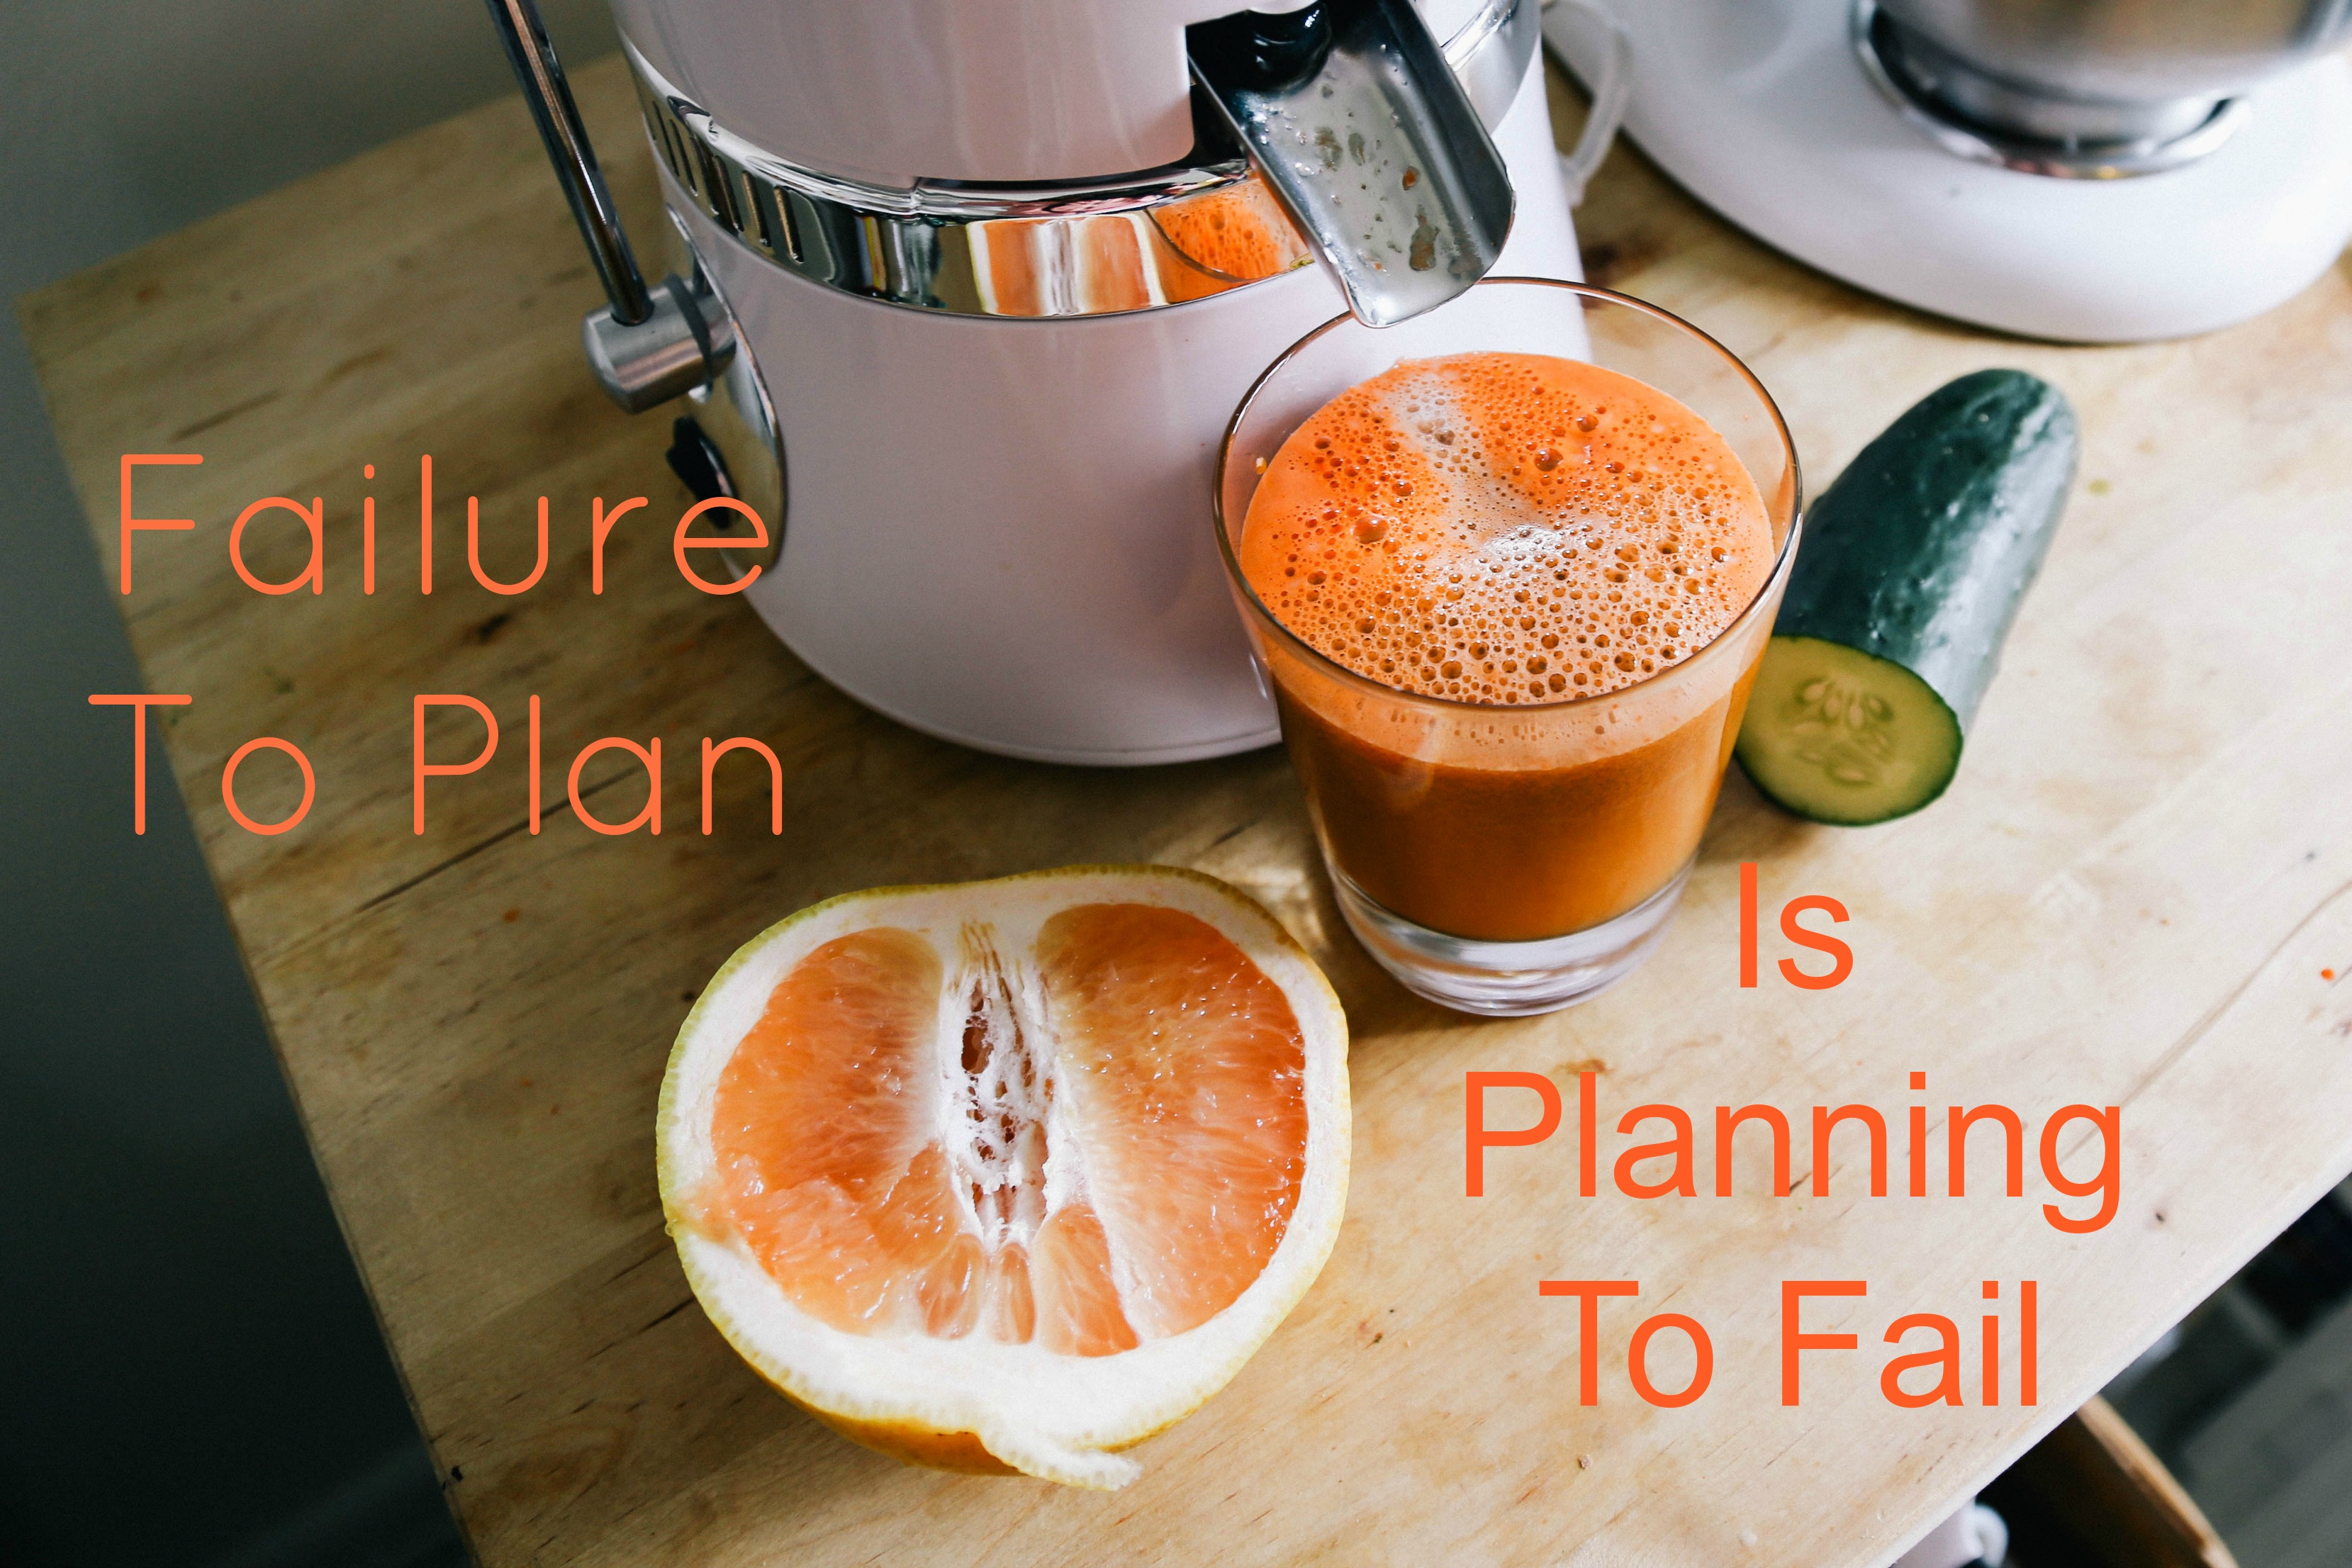 Failure To Plan, Is Planning To Fail